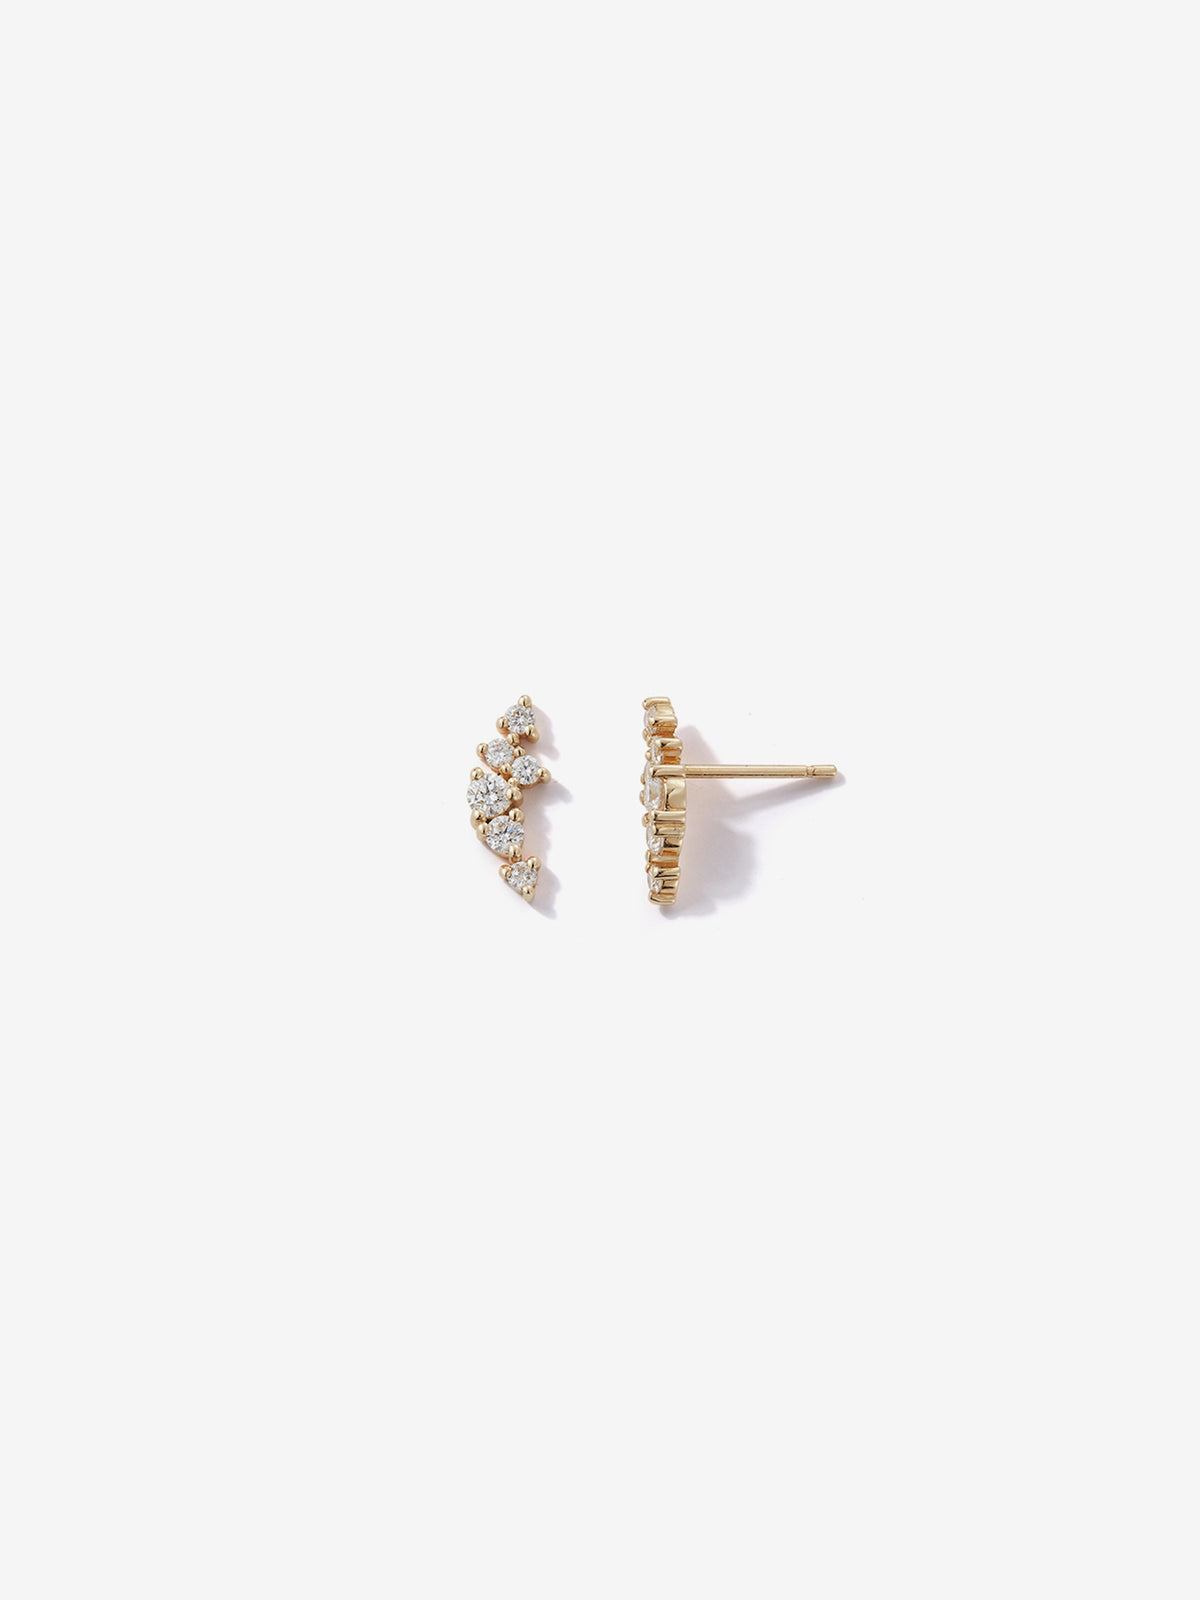 Sea of Beauty Collection. Small Diamond Cluster Studs SBE287